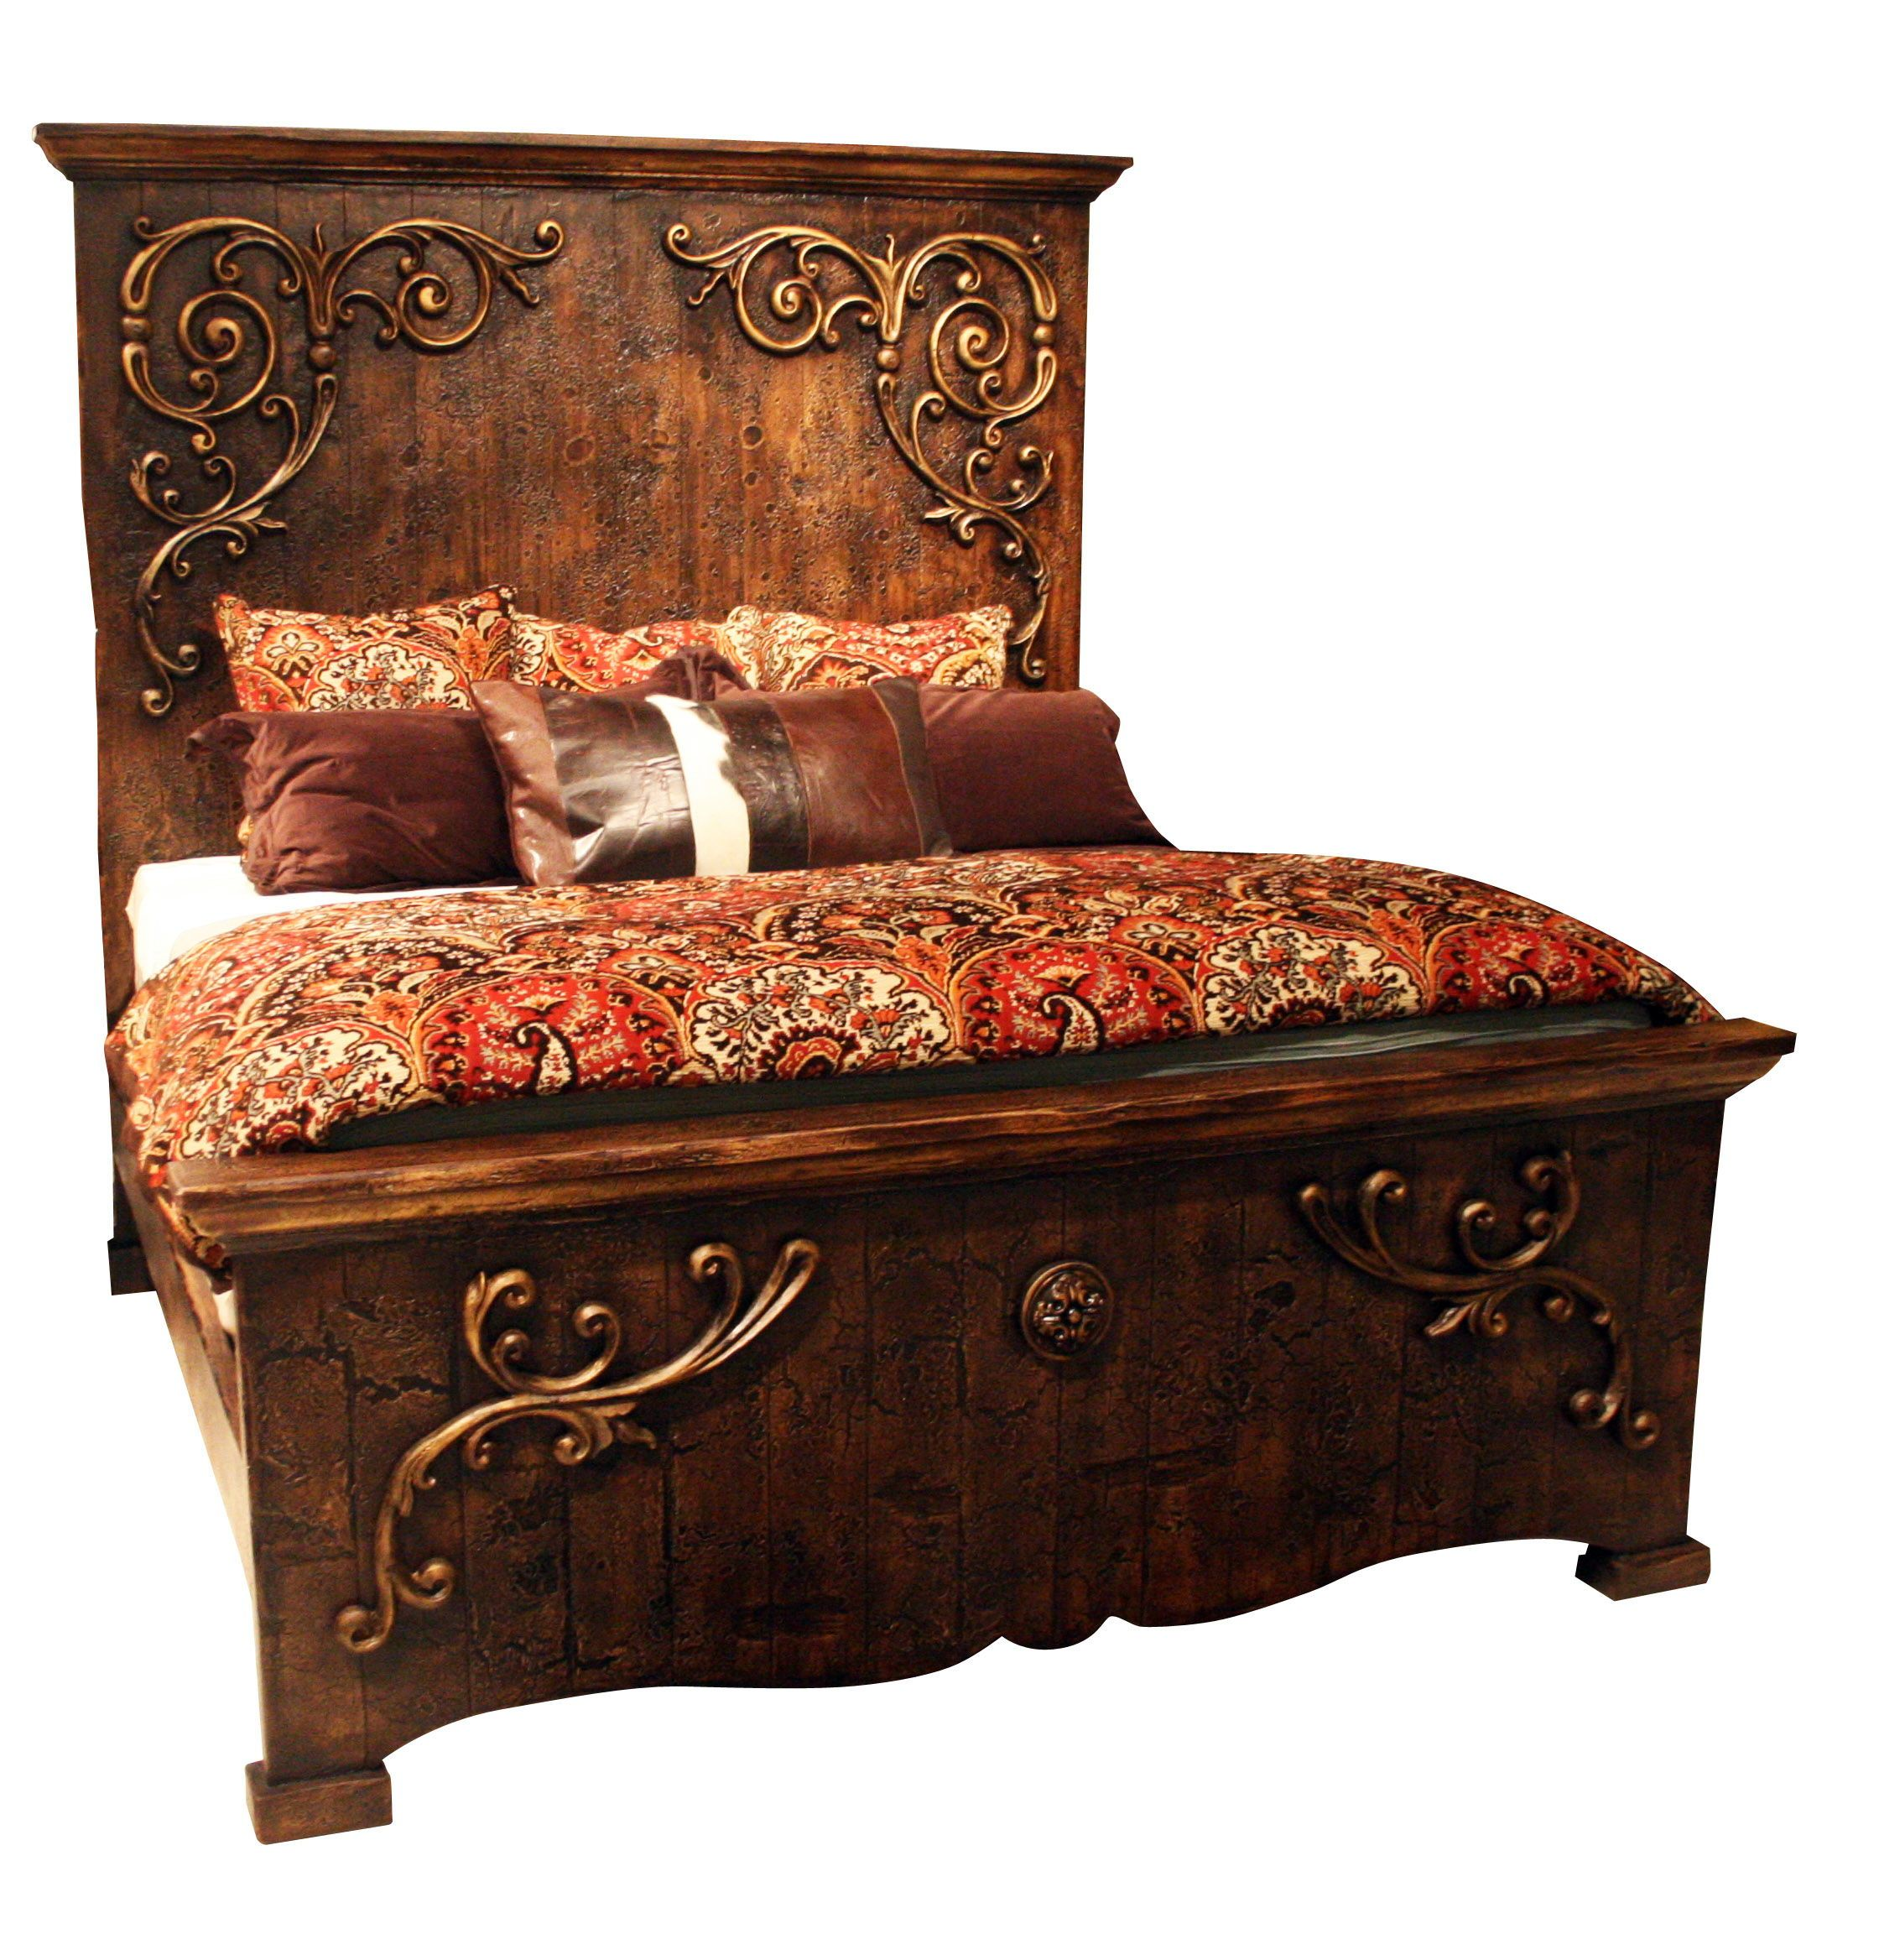 Amazing Handmadebed Wood Bed With Scrolls In Gold European Mediterranean Style Furniture Made B Painted Bedroom Furniture Tuscan Furniture Tuscan Decorating